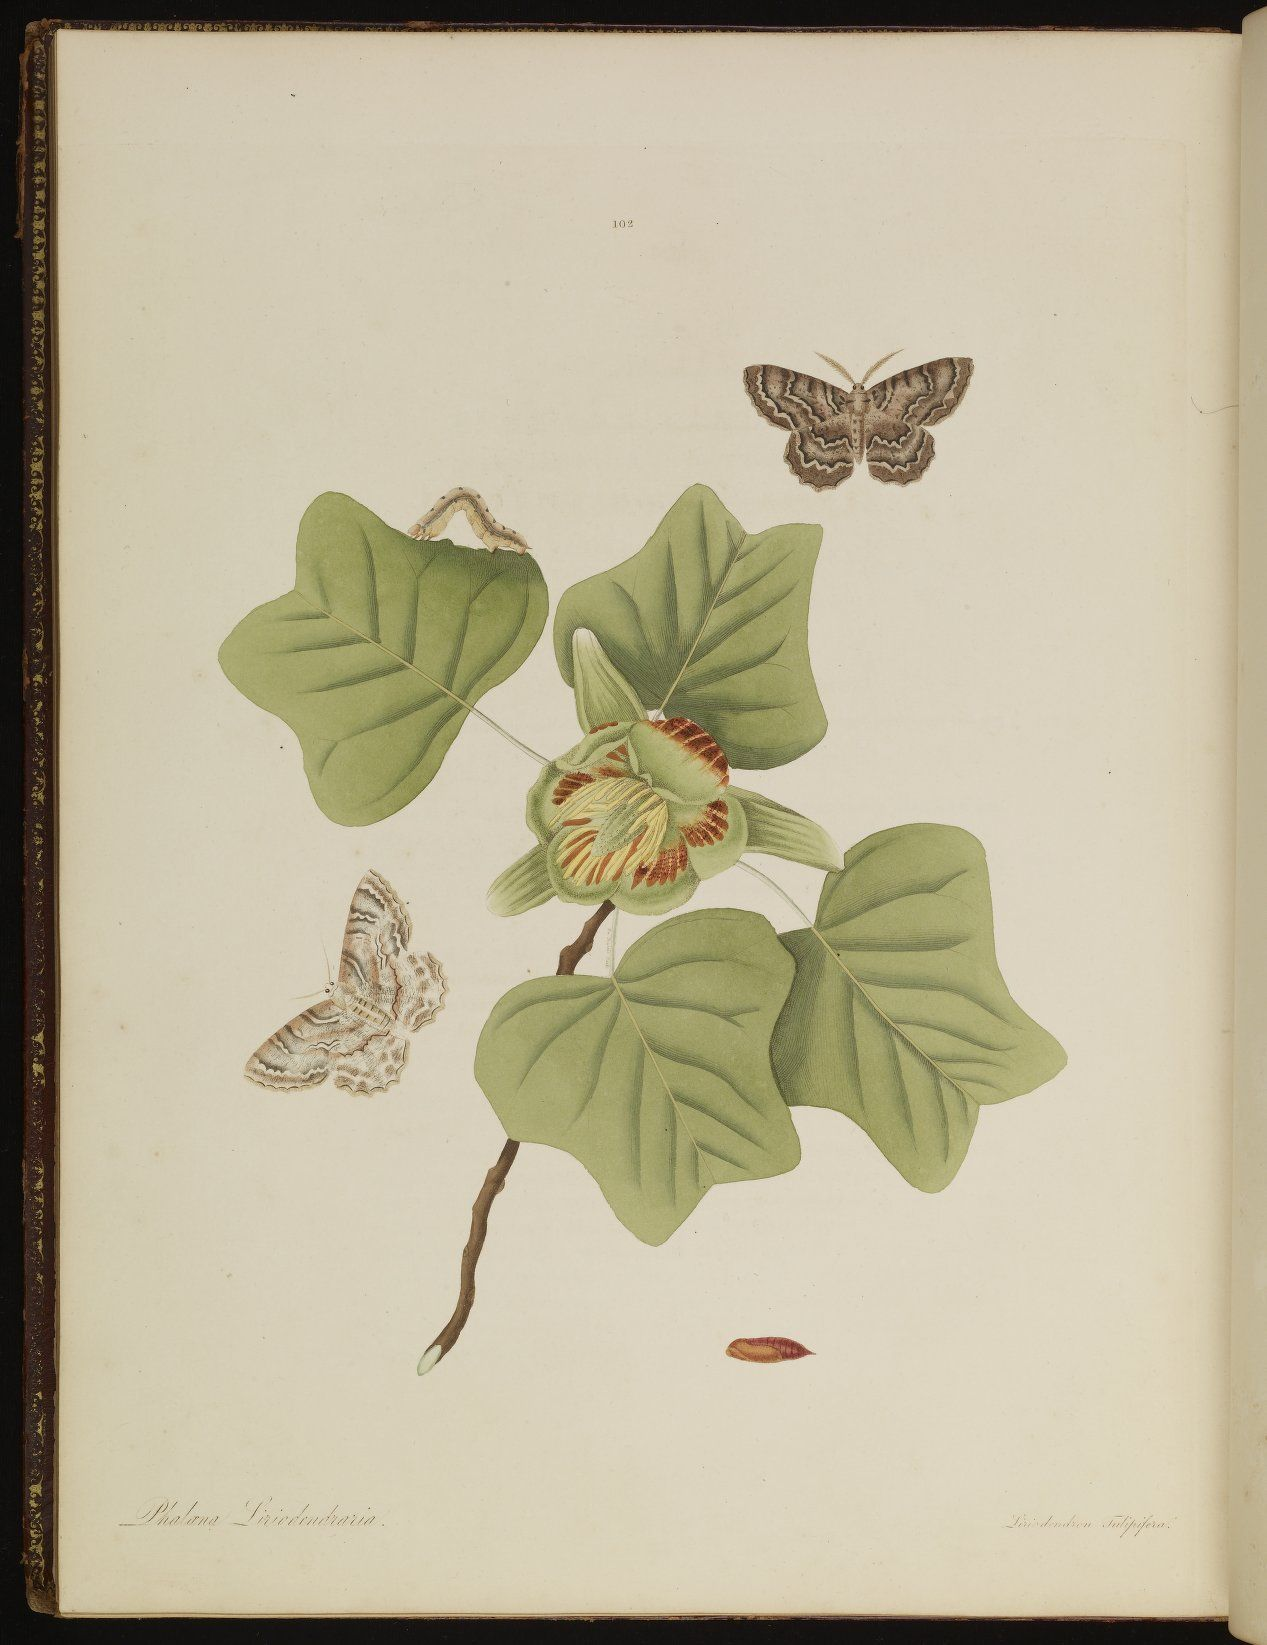 Plate 102 from The natural history of the rarer lepidopterous insects of Georgia. Including their systematic characters, the particulars of their several metamorphoses, and the plants on which they feed. Collected from the observation of Mr. John Abbot, many years resid · Smith, James Edward, 1759-1828 · 1797 · Albert and Shirley Small Special Collections Library, University of Virginia.